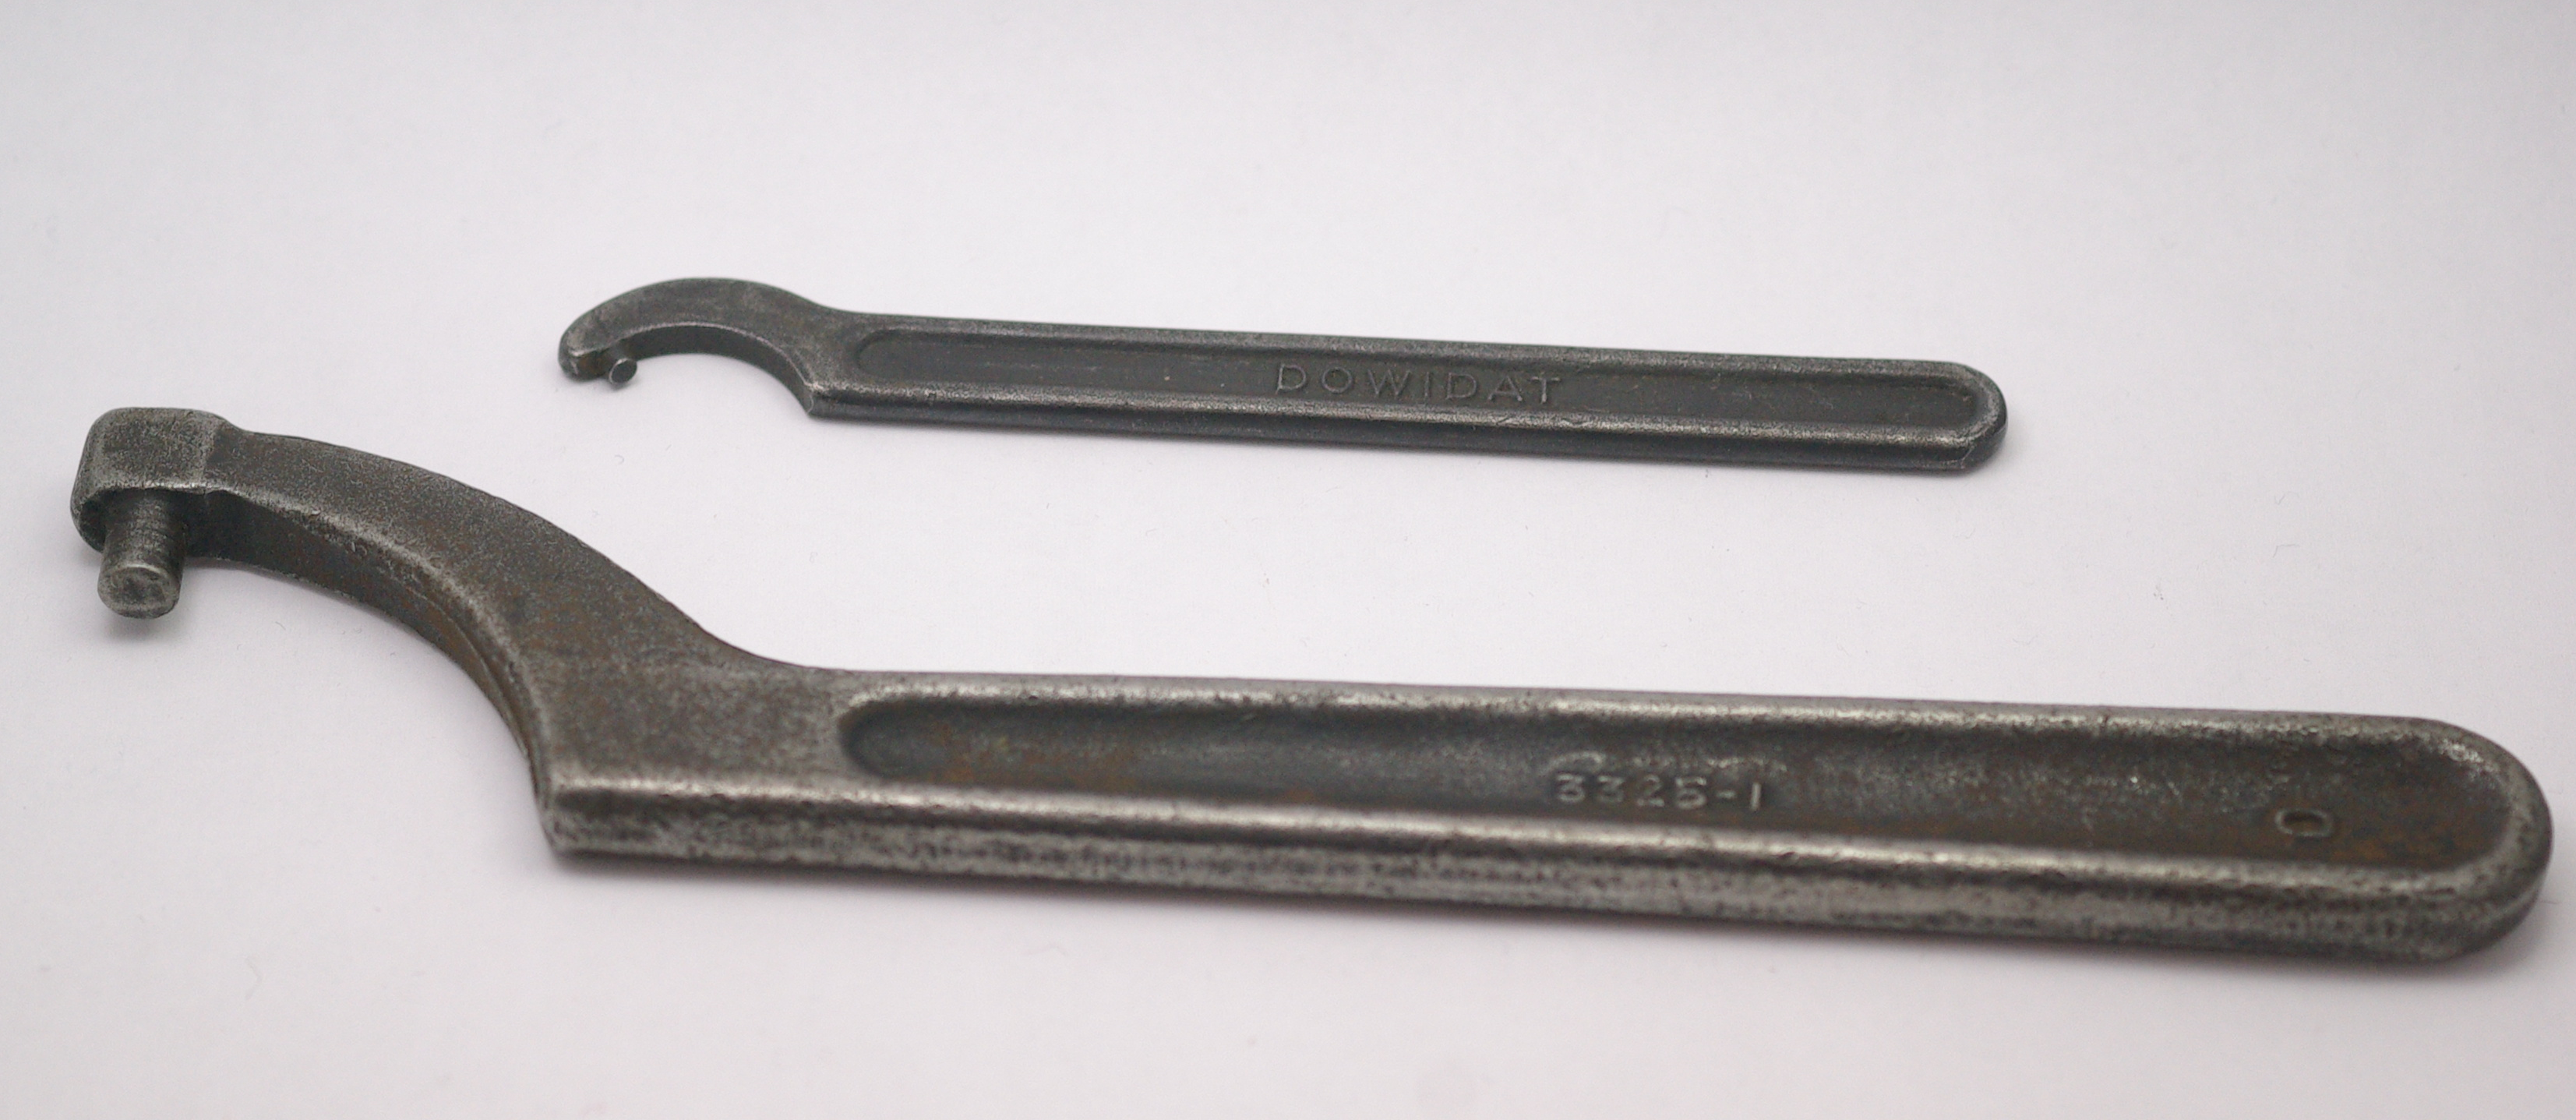 What Is a Pin Wrench?